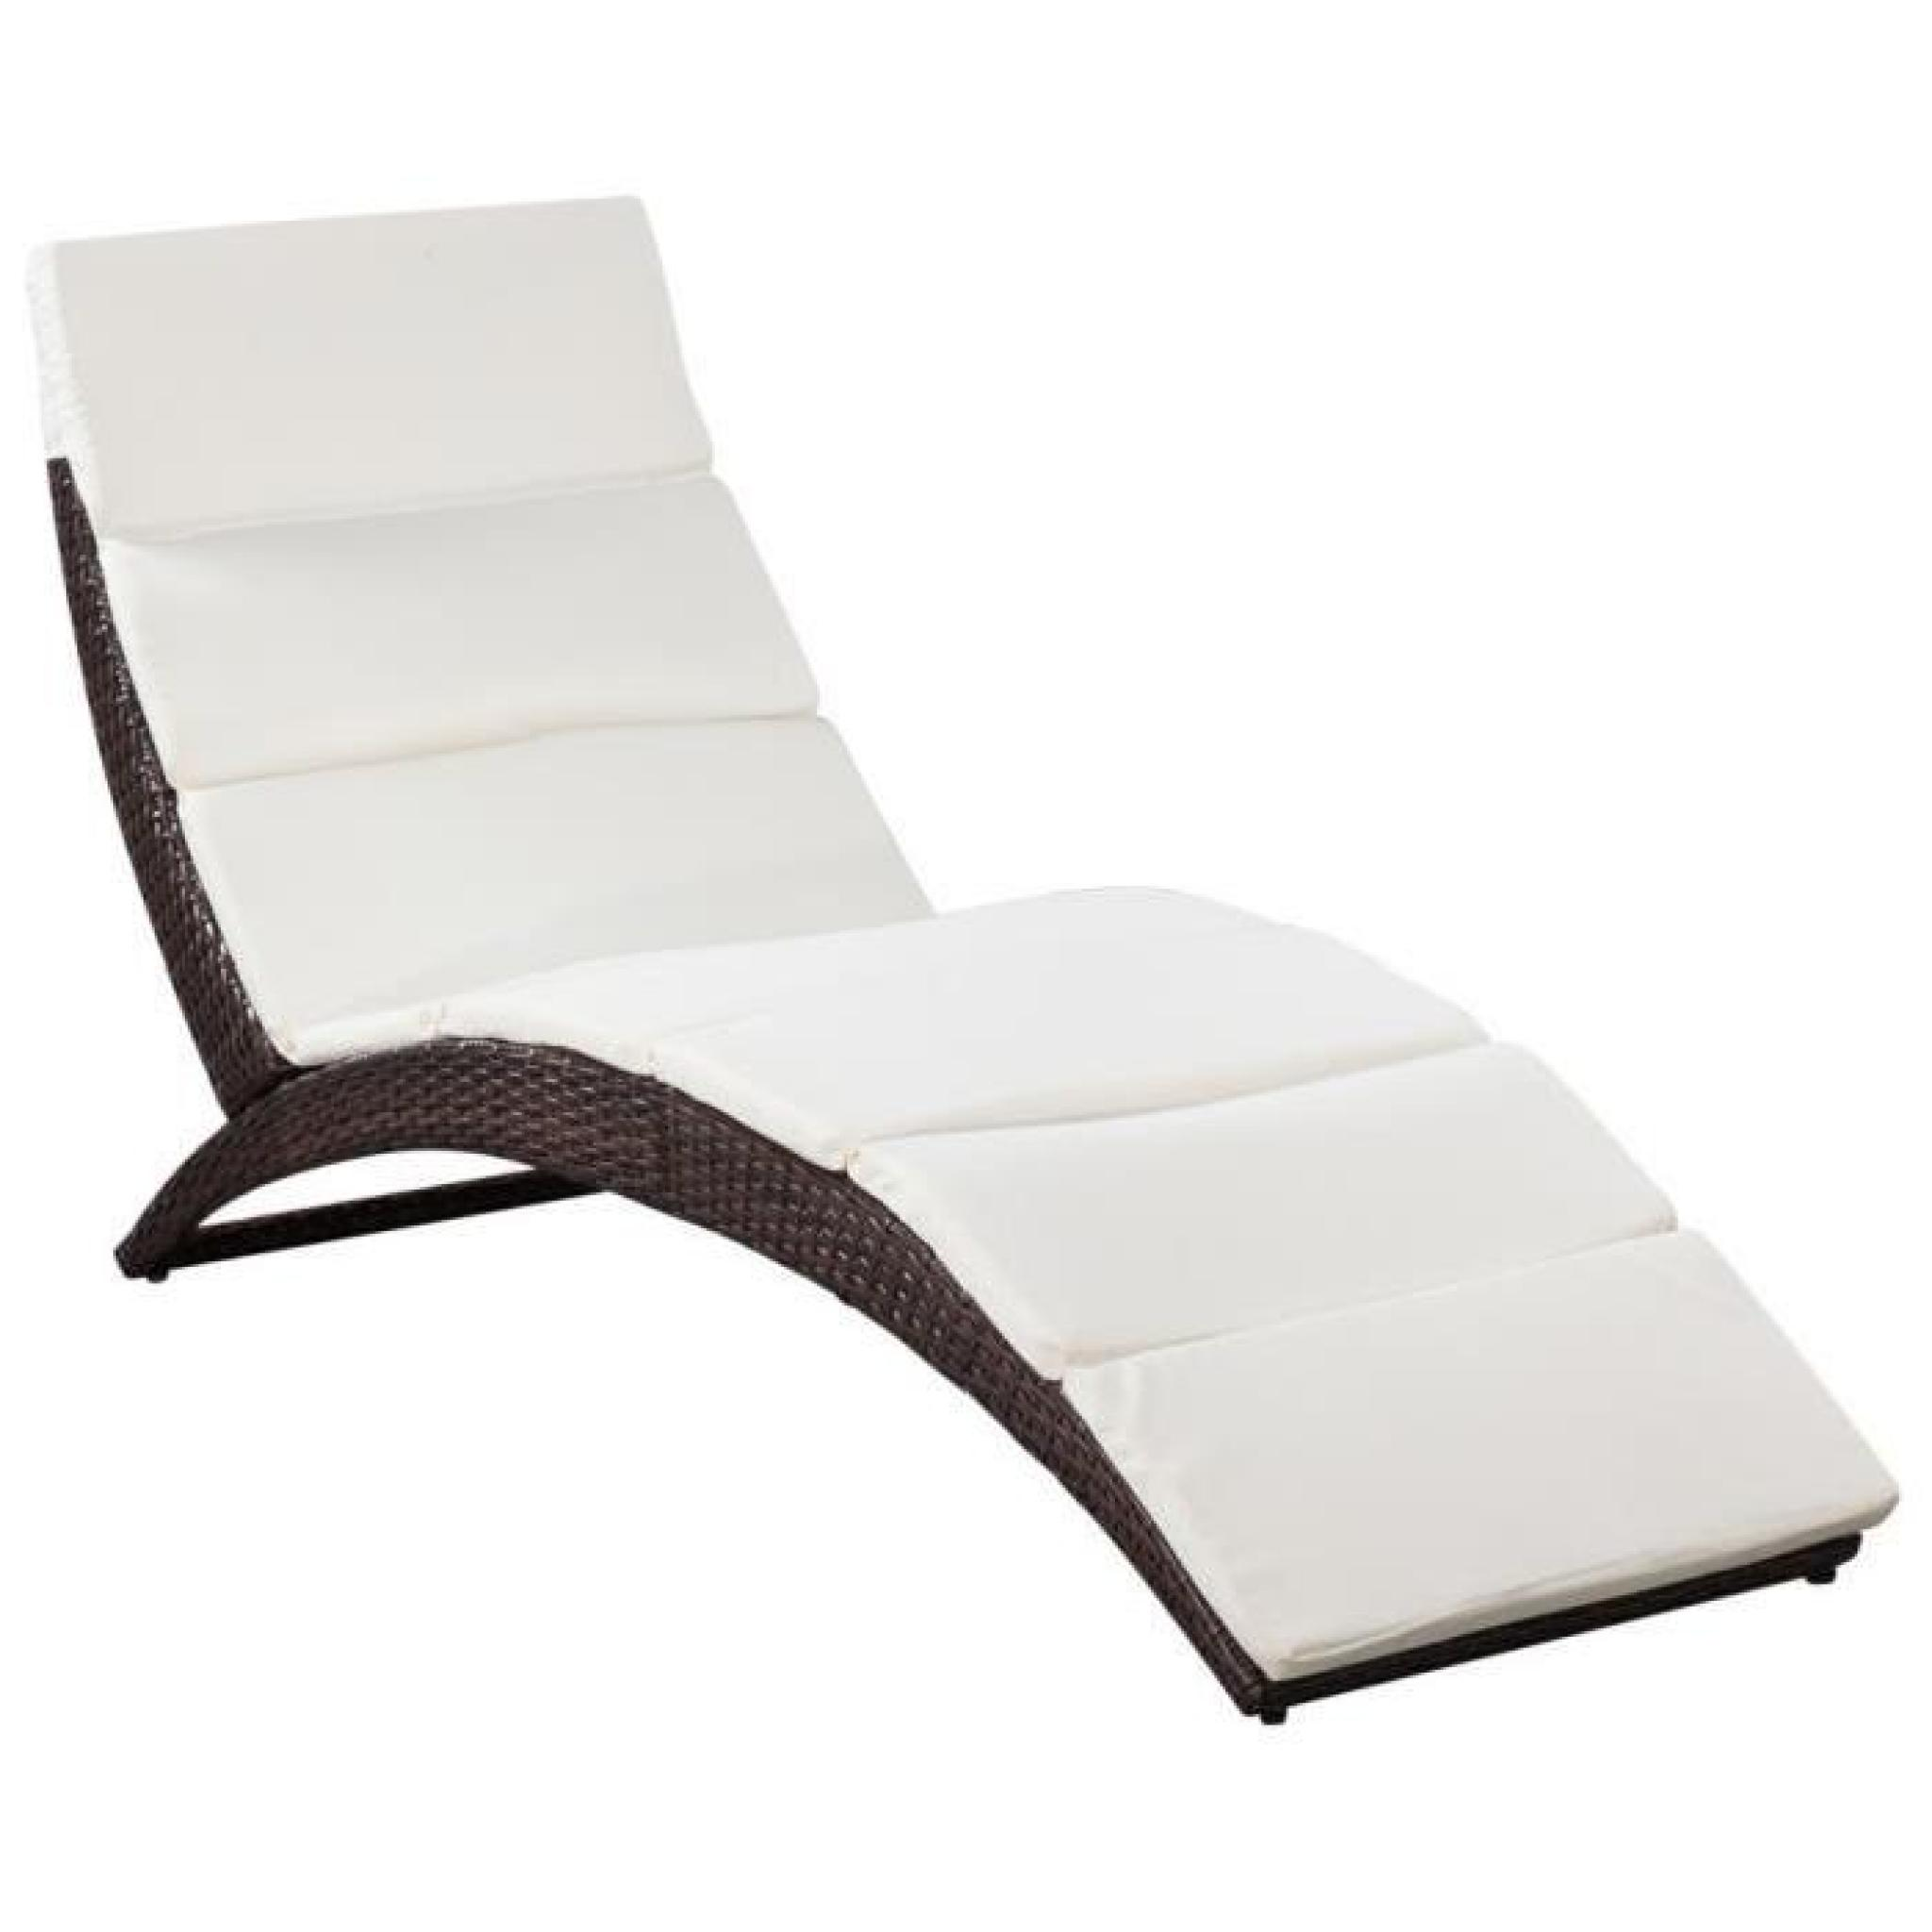 chaise longue pliable avec coussin en poly rotin marron. Black Bedroom Furniture Sets. Home Design Ideas